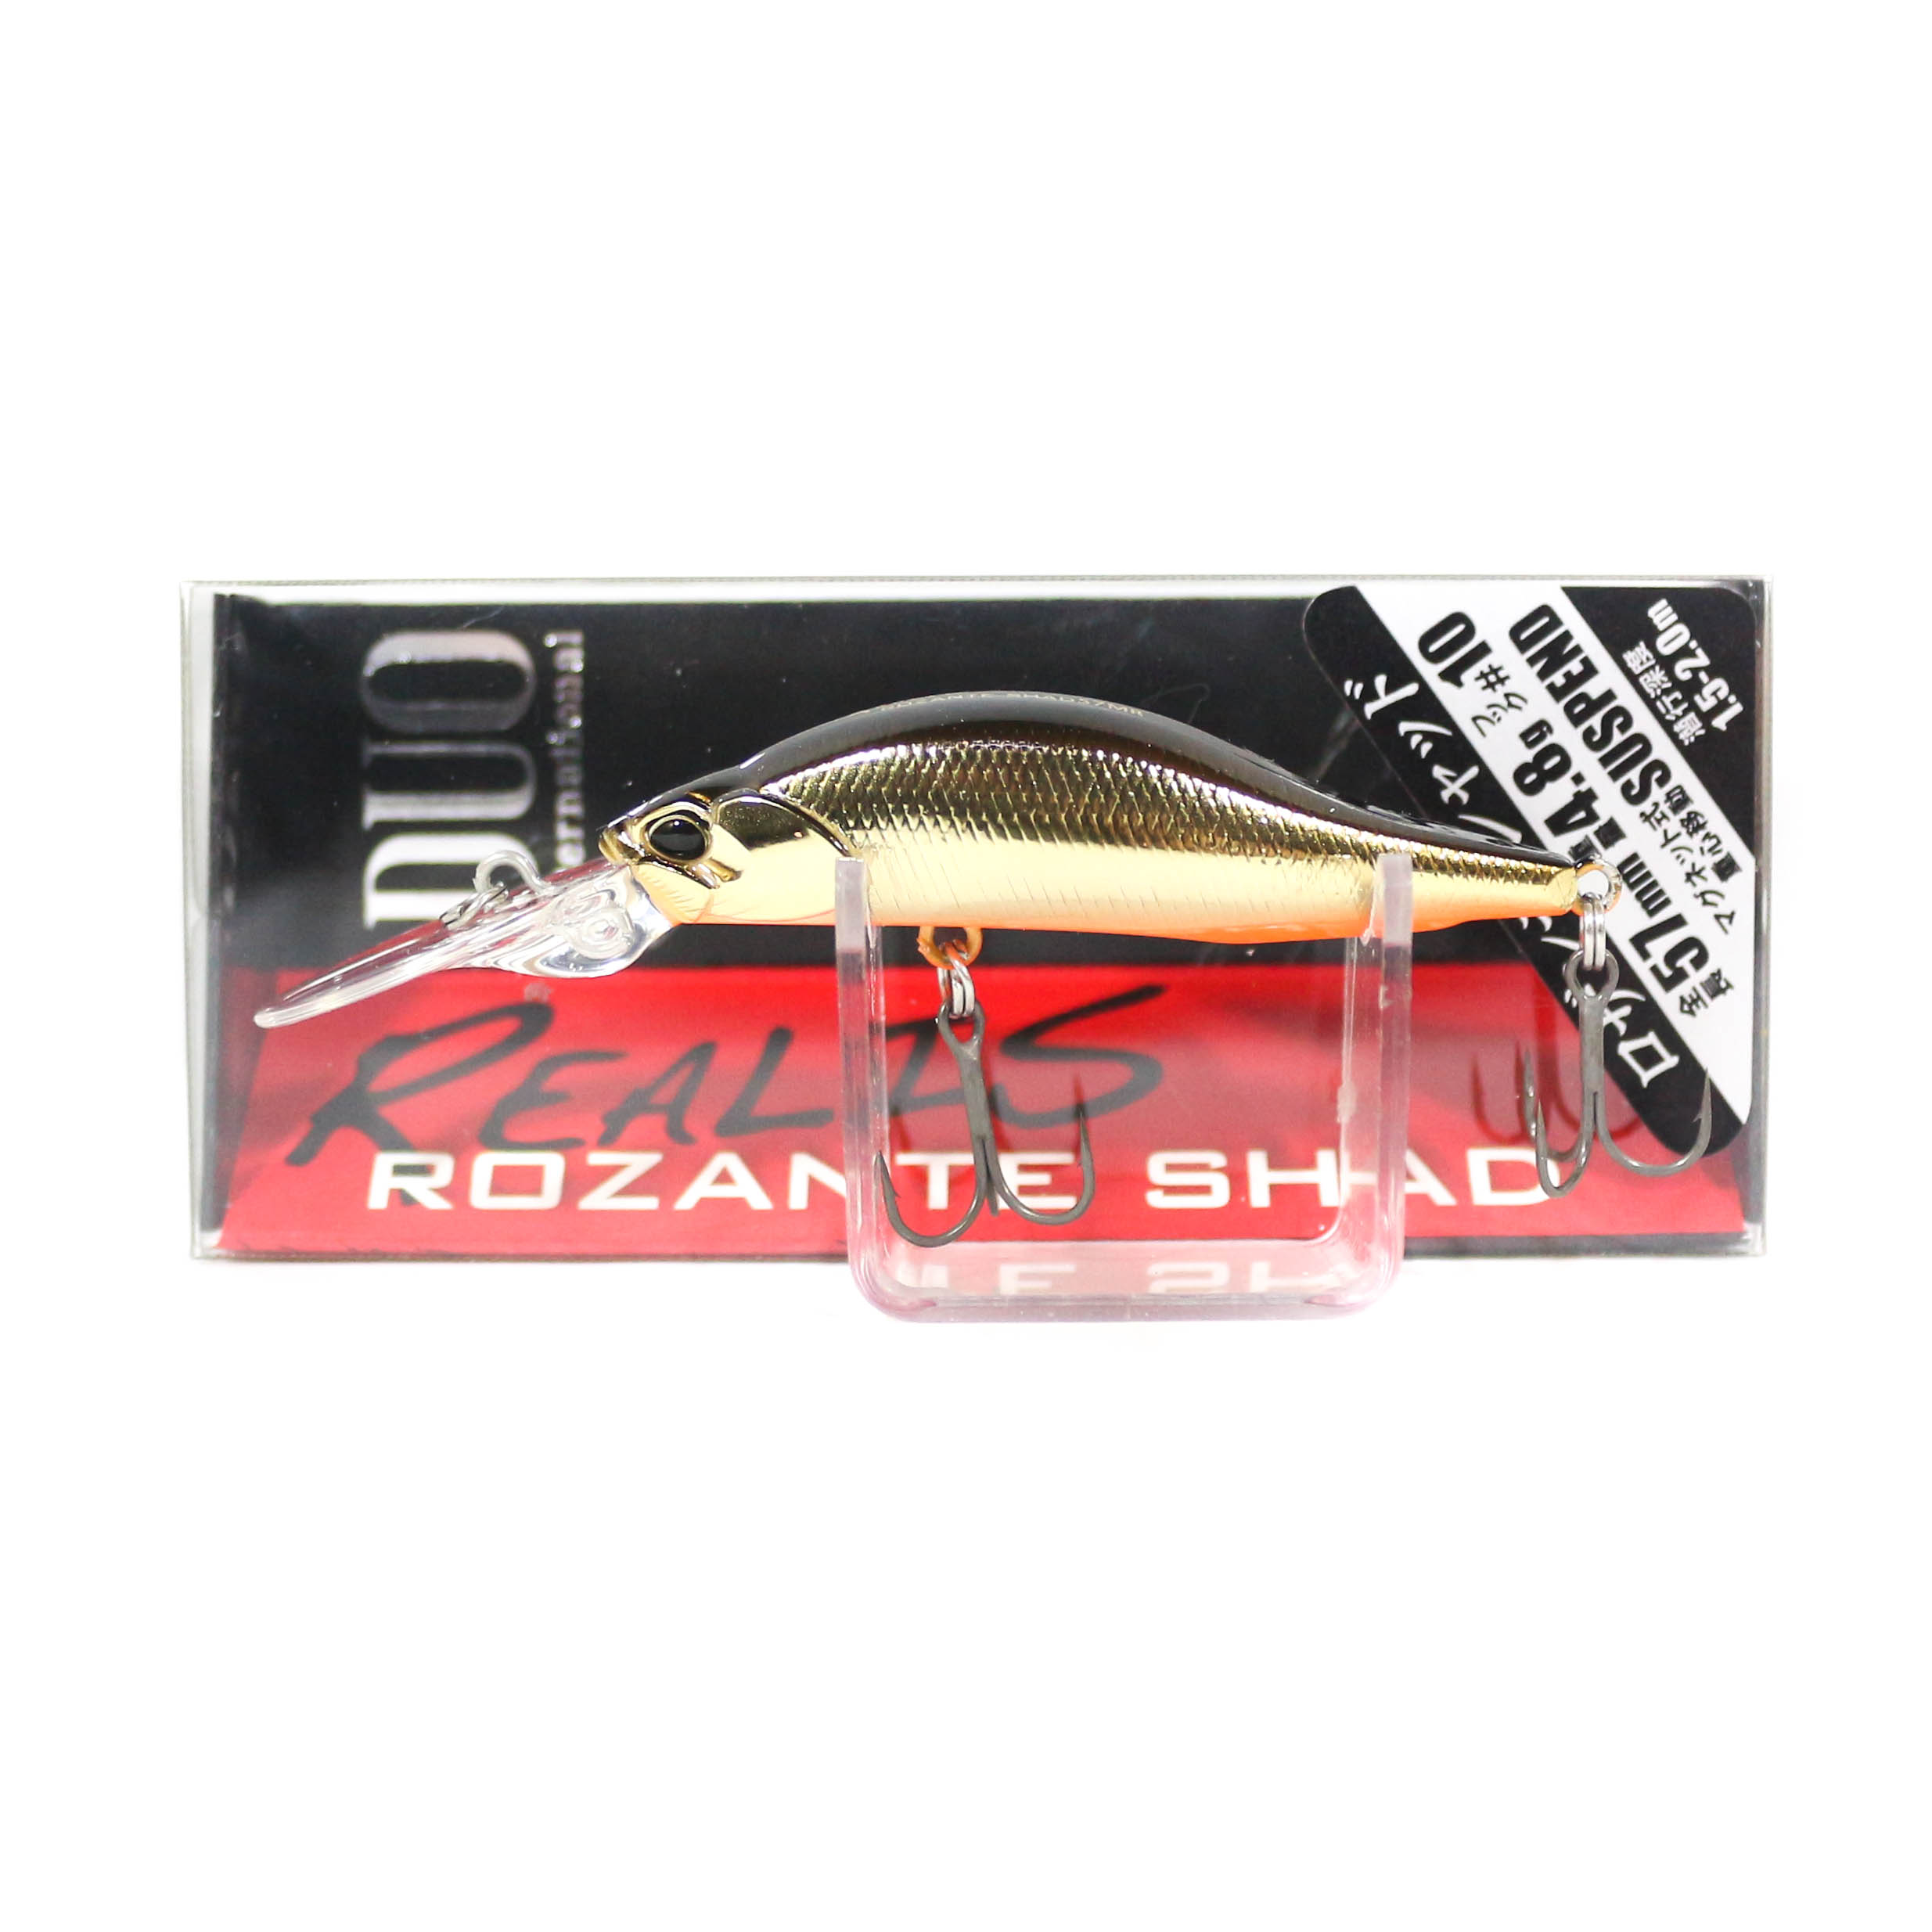 Duo Realis Rozante Shad 57 MR Suspend Lure ASA3054 (9232)